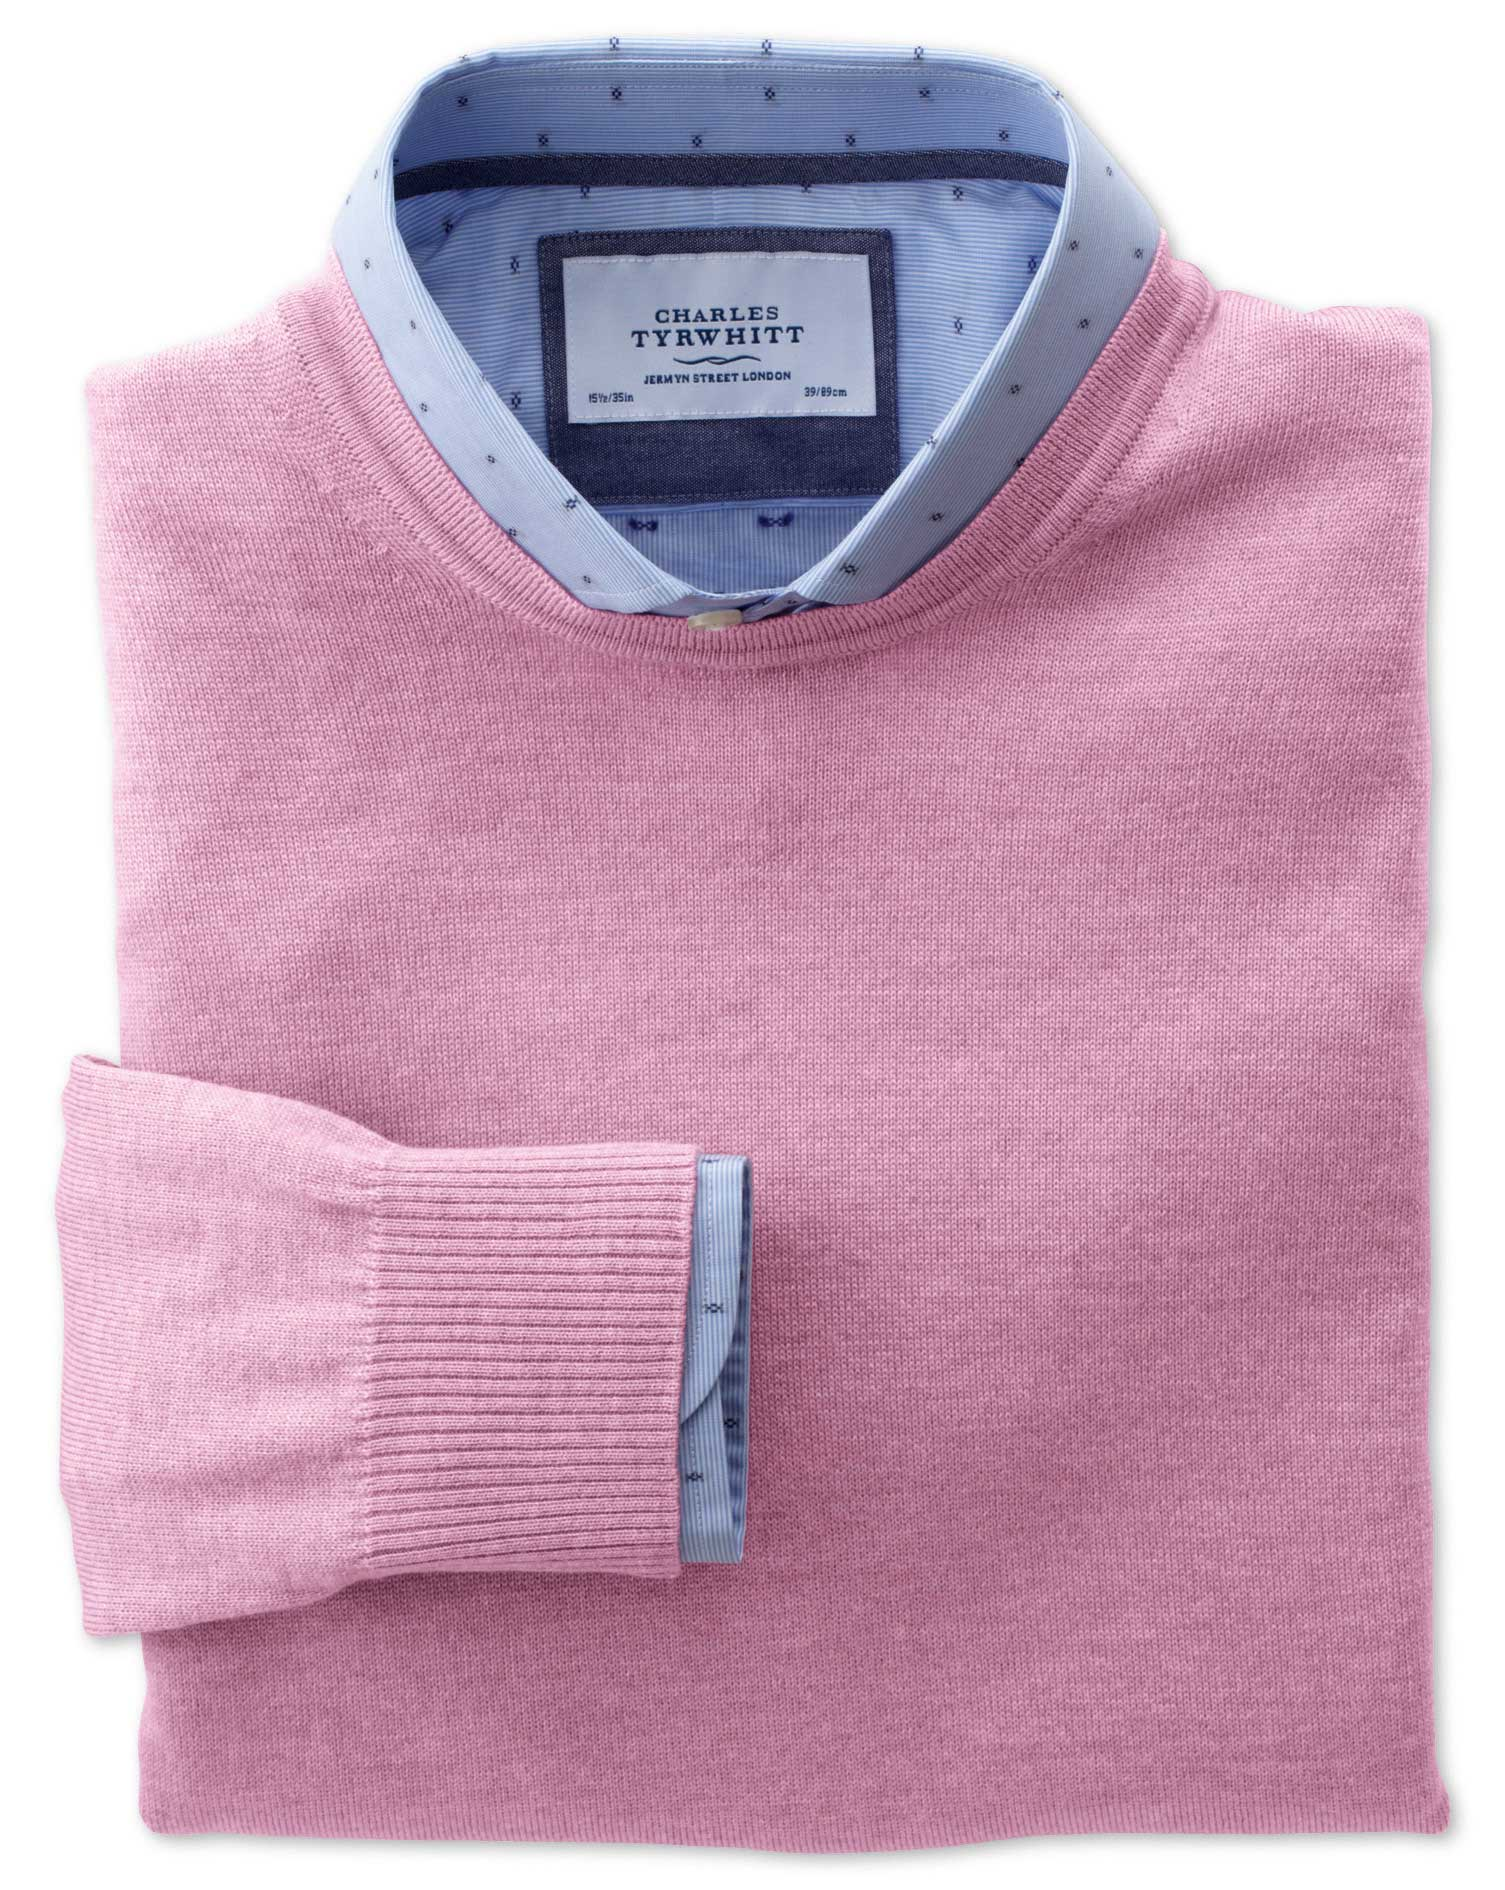 Light Pink Merino Wool Crew Neck Jumper Size XL by Charles Tyrwhitt